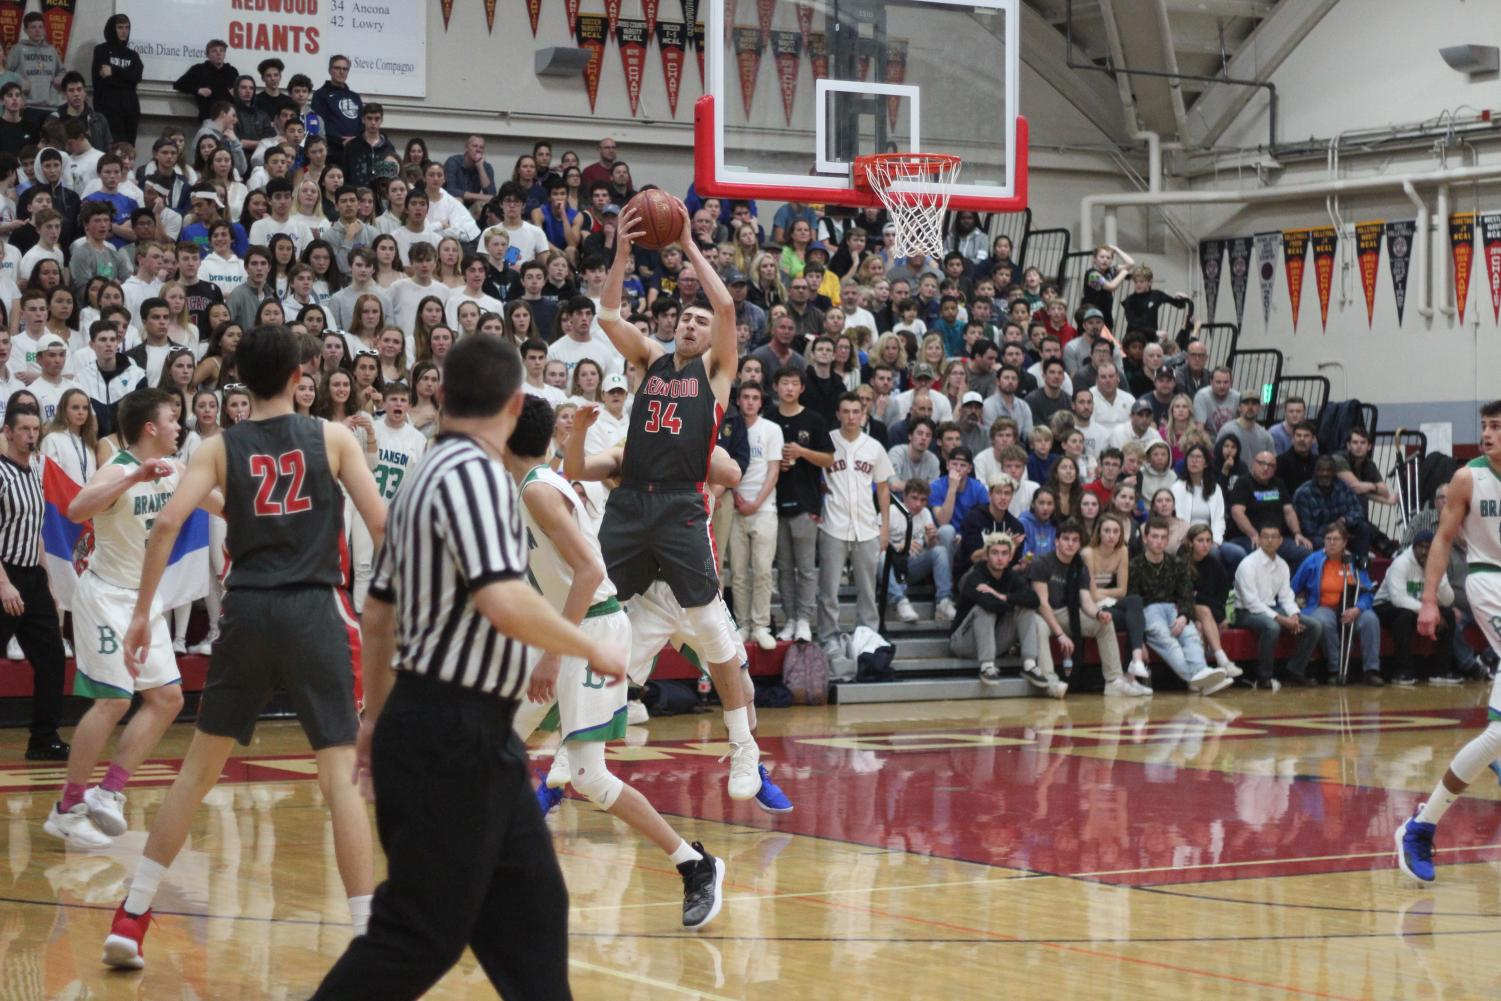 Overcrowding Redwood's Phil Roark gymnasium, over 2,152 people showed up to for the Marin County Athletic League [MCAL] championship basketball game on Feb. 4.